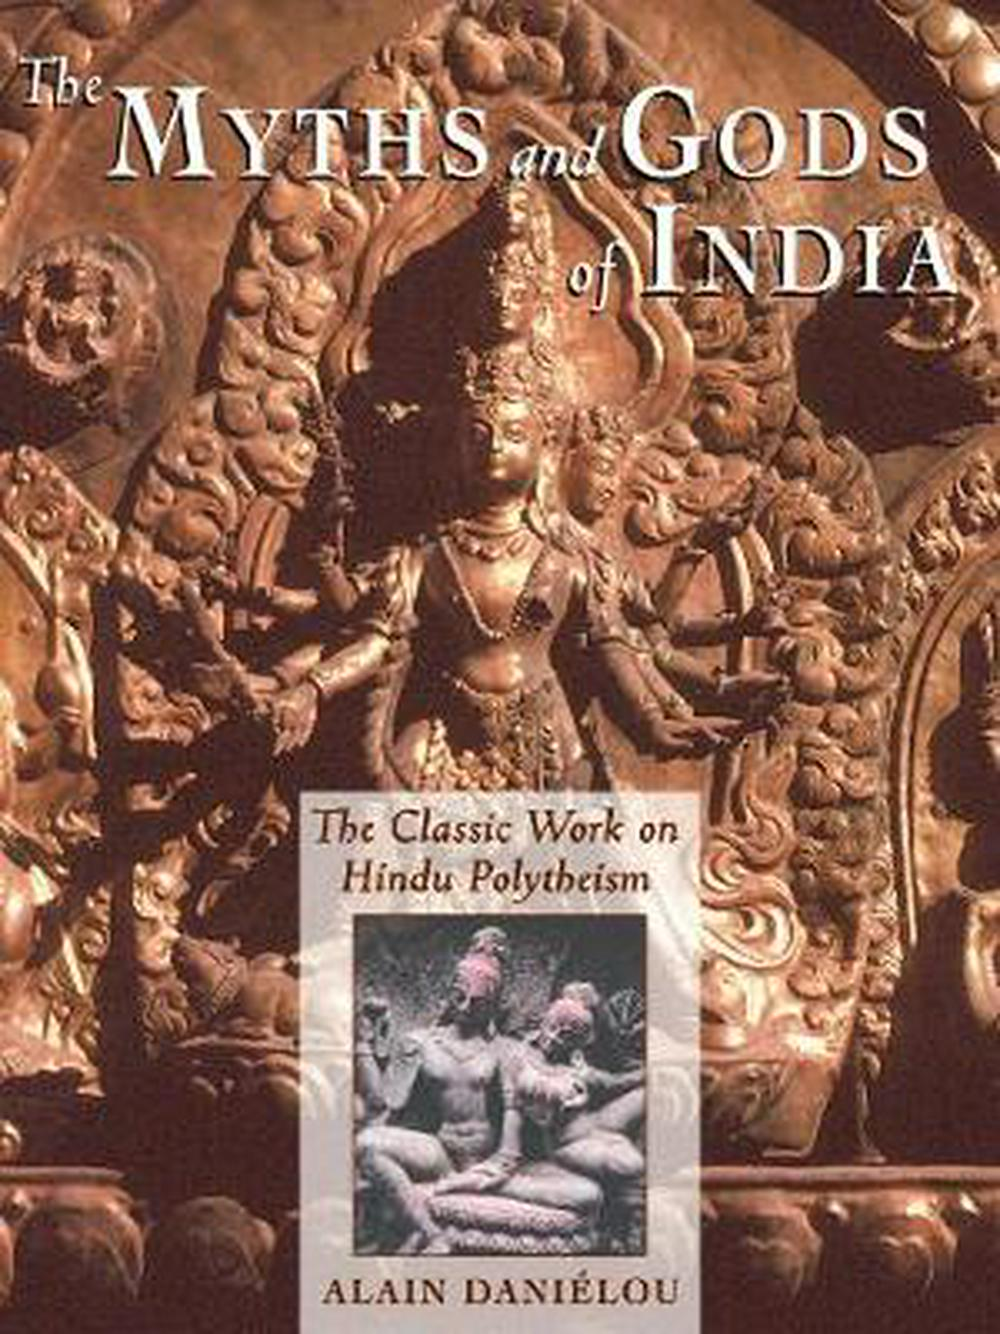 The Myths and Gods of India: The Classic Work on Hindu Polytheism from the Princeton Bollingen Series by Alain Danielou, ISBN: 9780892813544